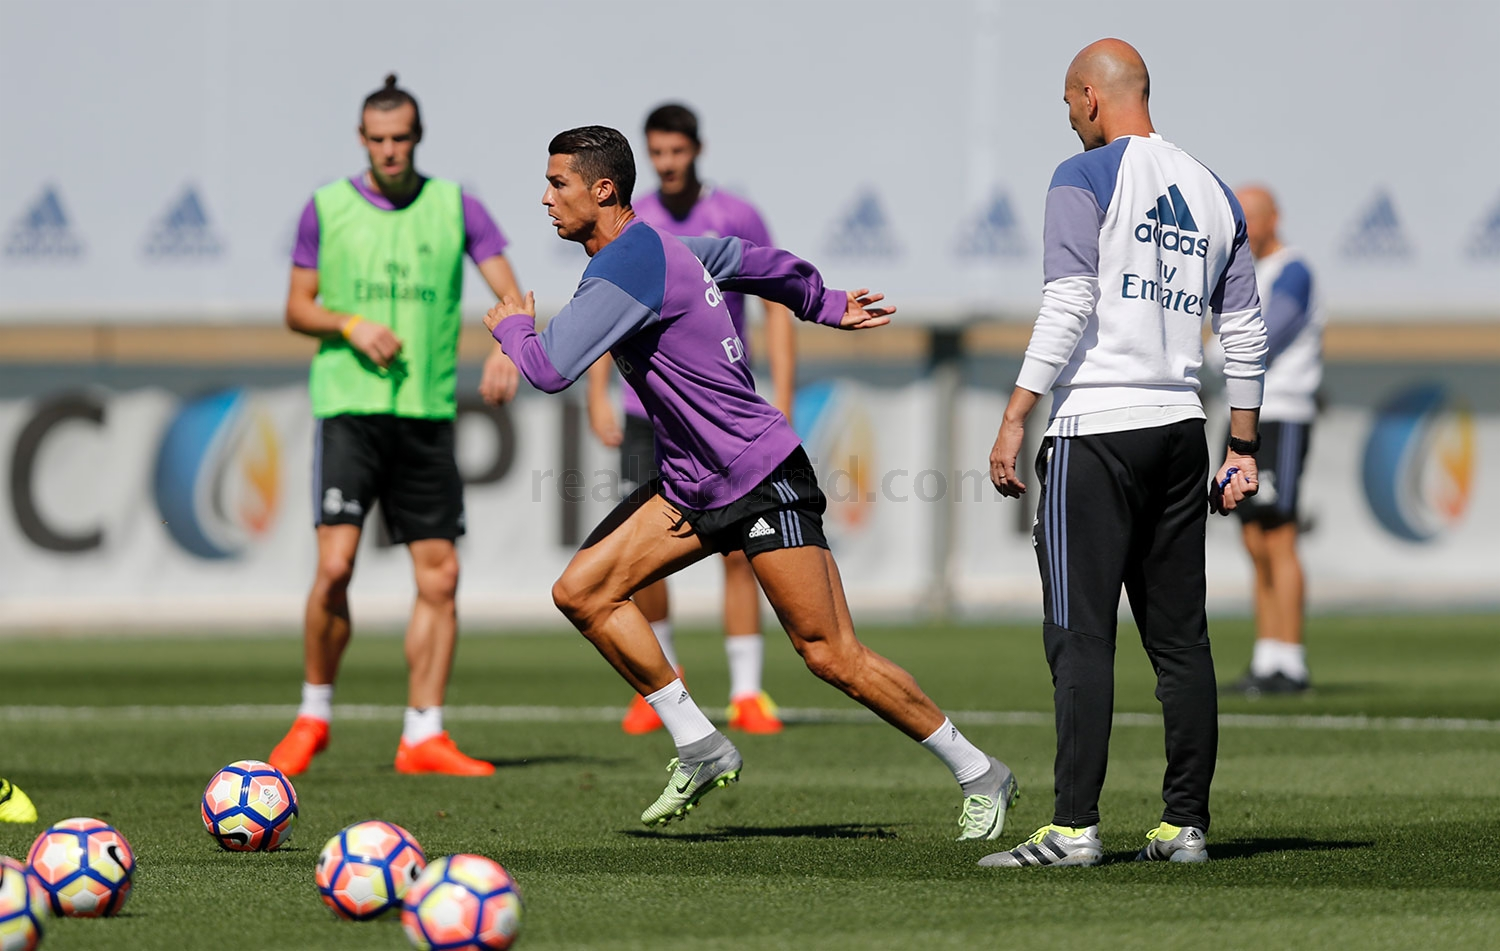 Real Madrid - Entrenamiento del Real Madrid - 19-09-2016